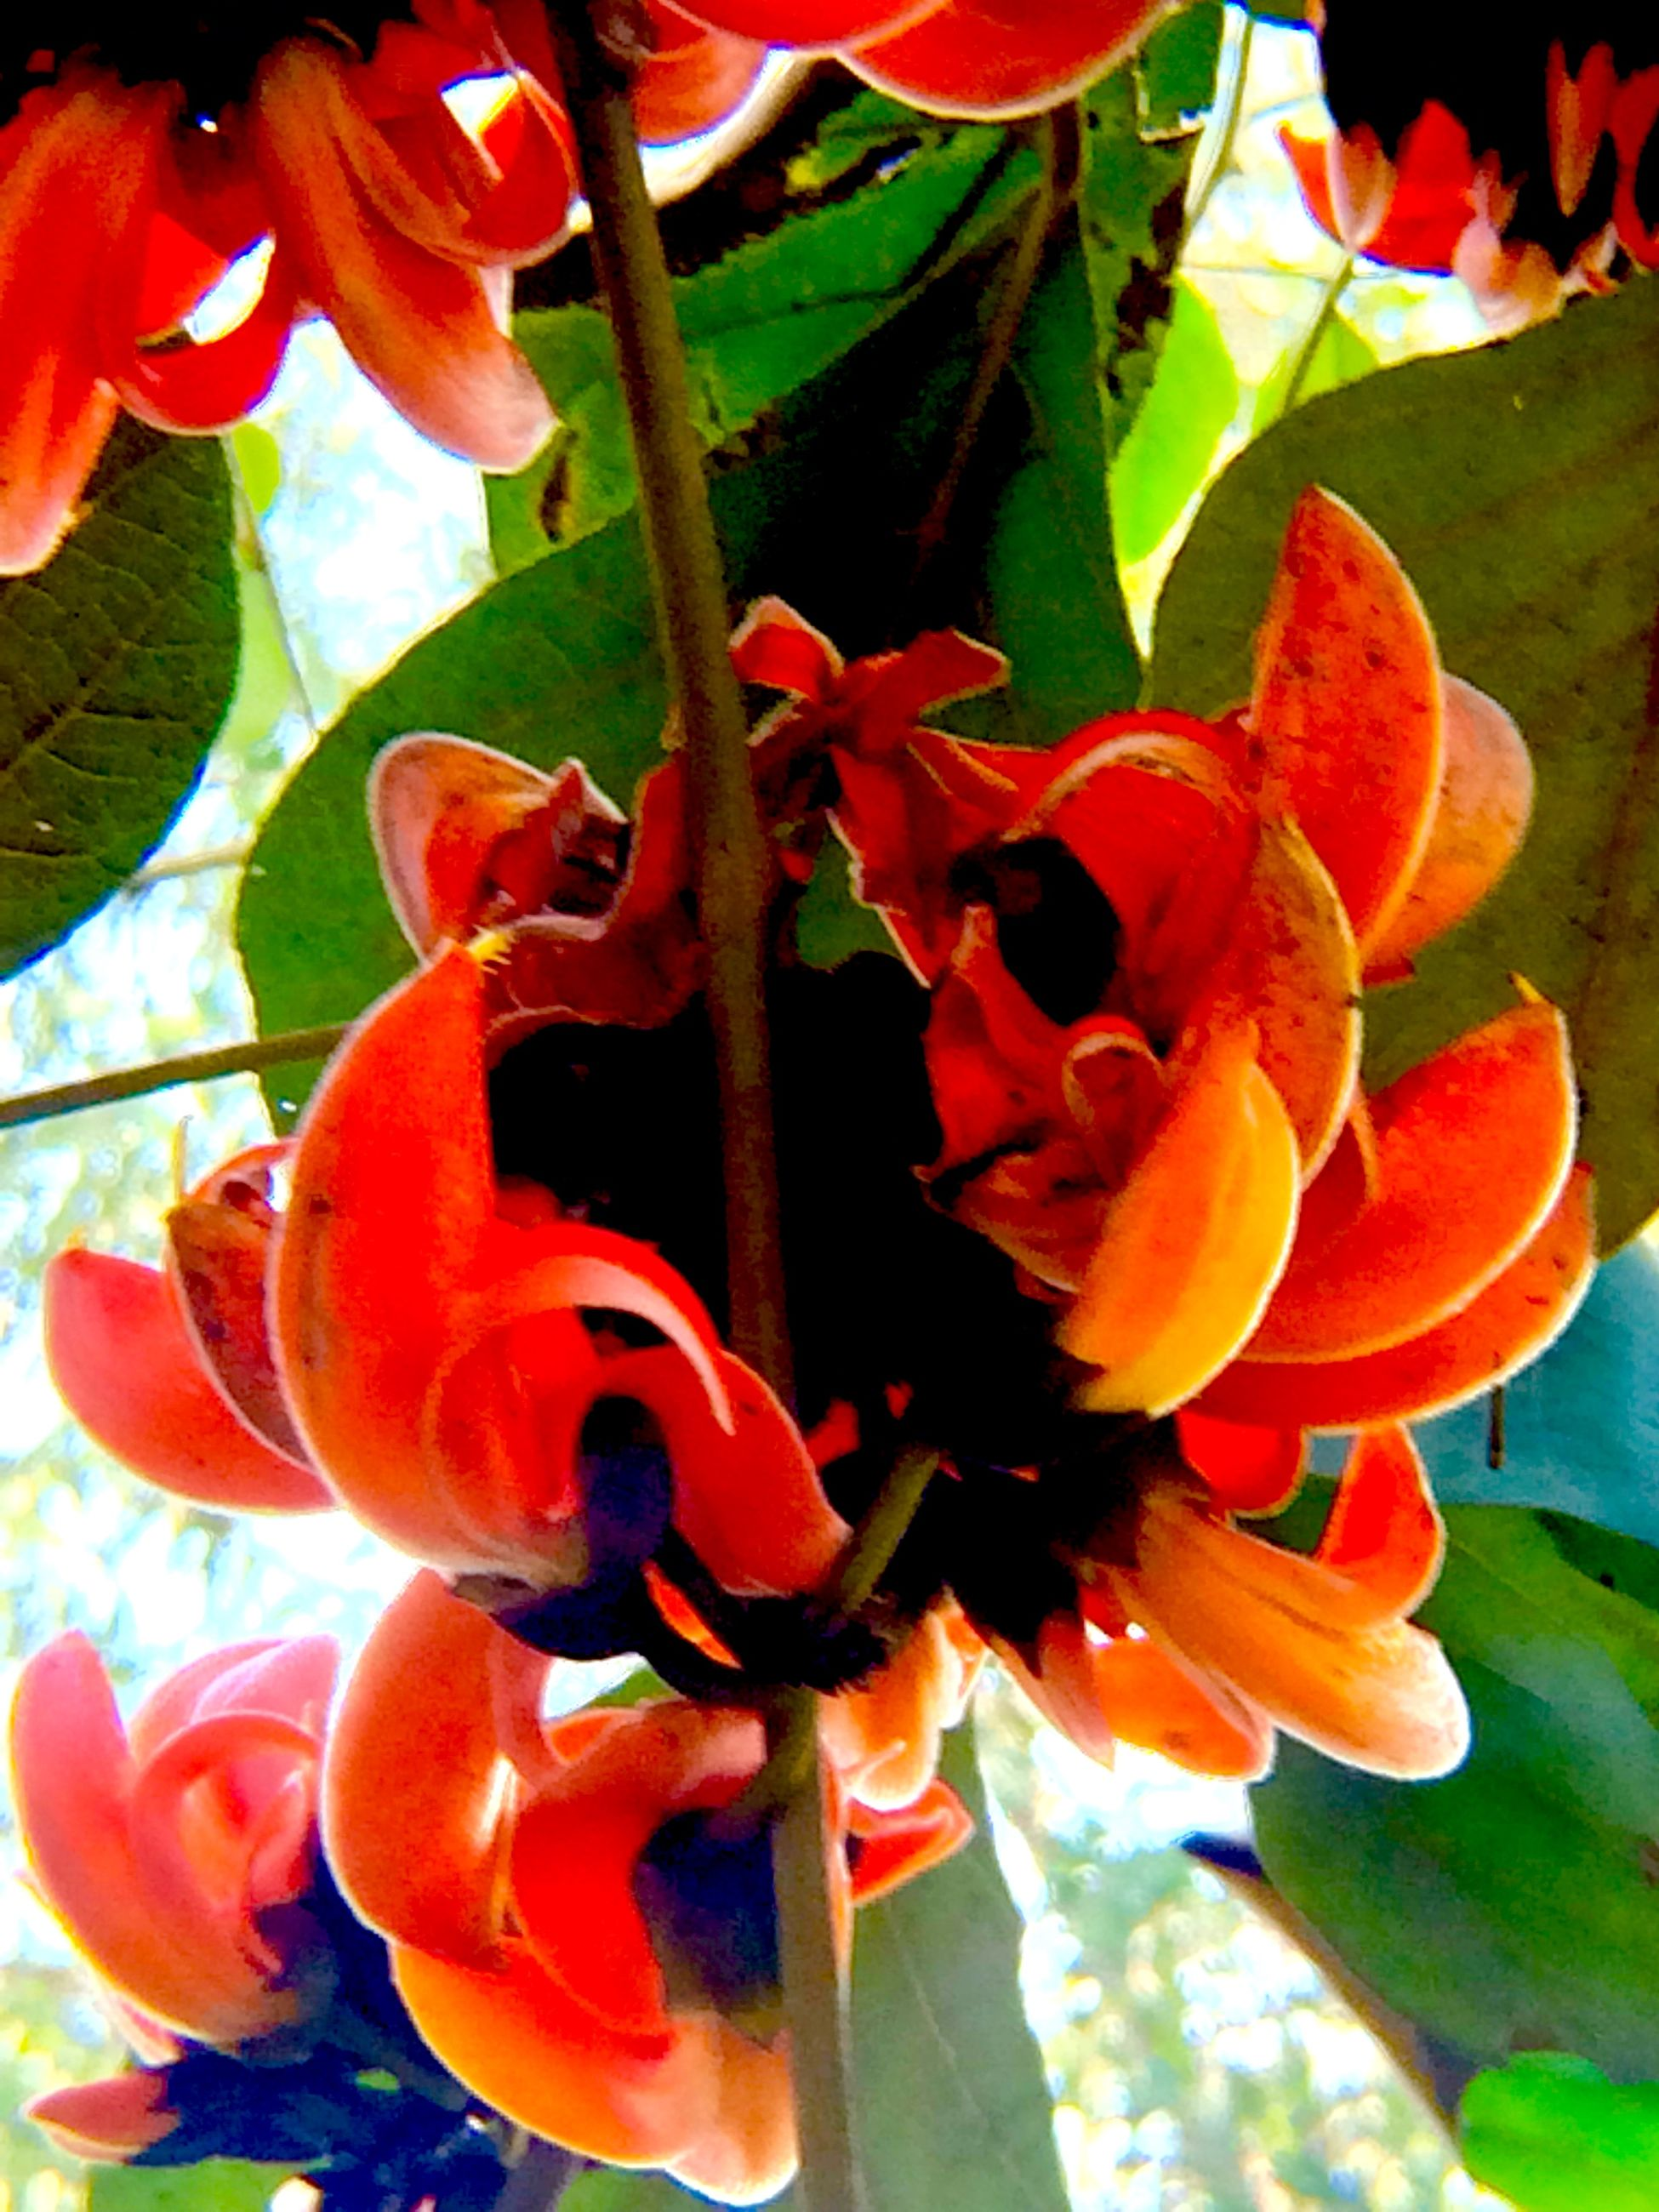 flower, petal, freshness, flower head, growth, fragility, orange color, beauty in nature, red, plant, blooming, close-up, nature, pollen, stamen, in bloom, focus on foreground, leaf, no people, day